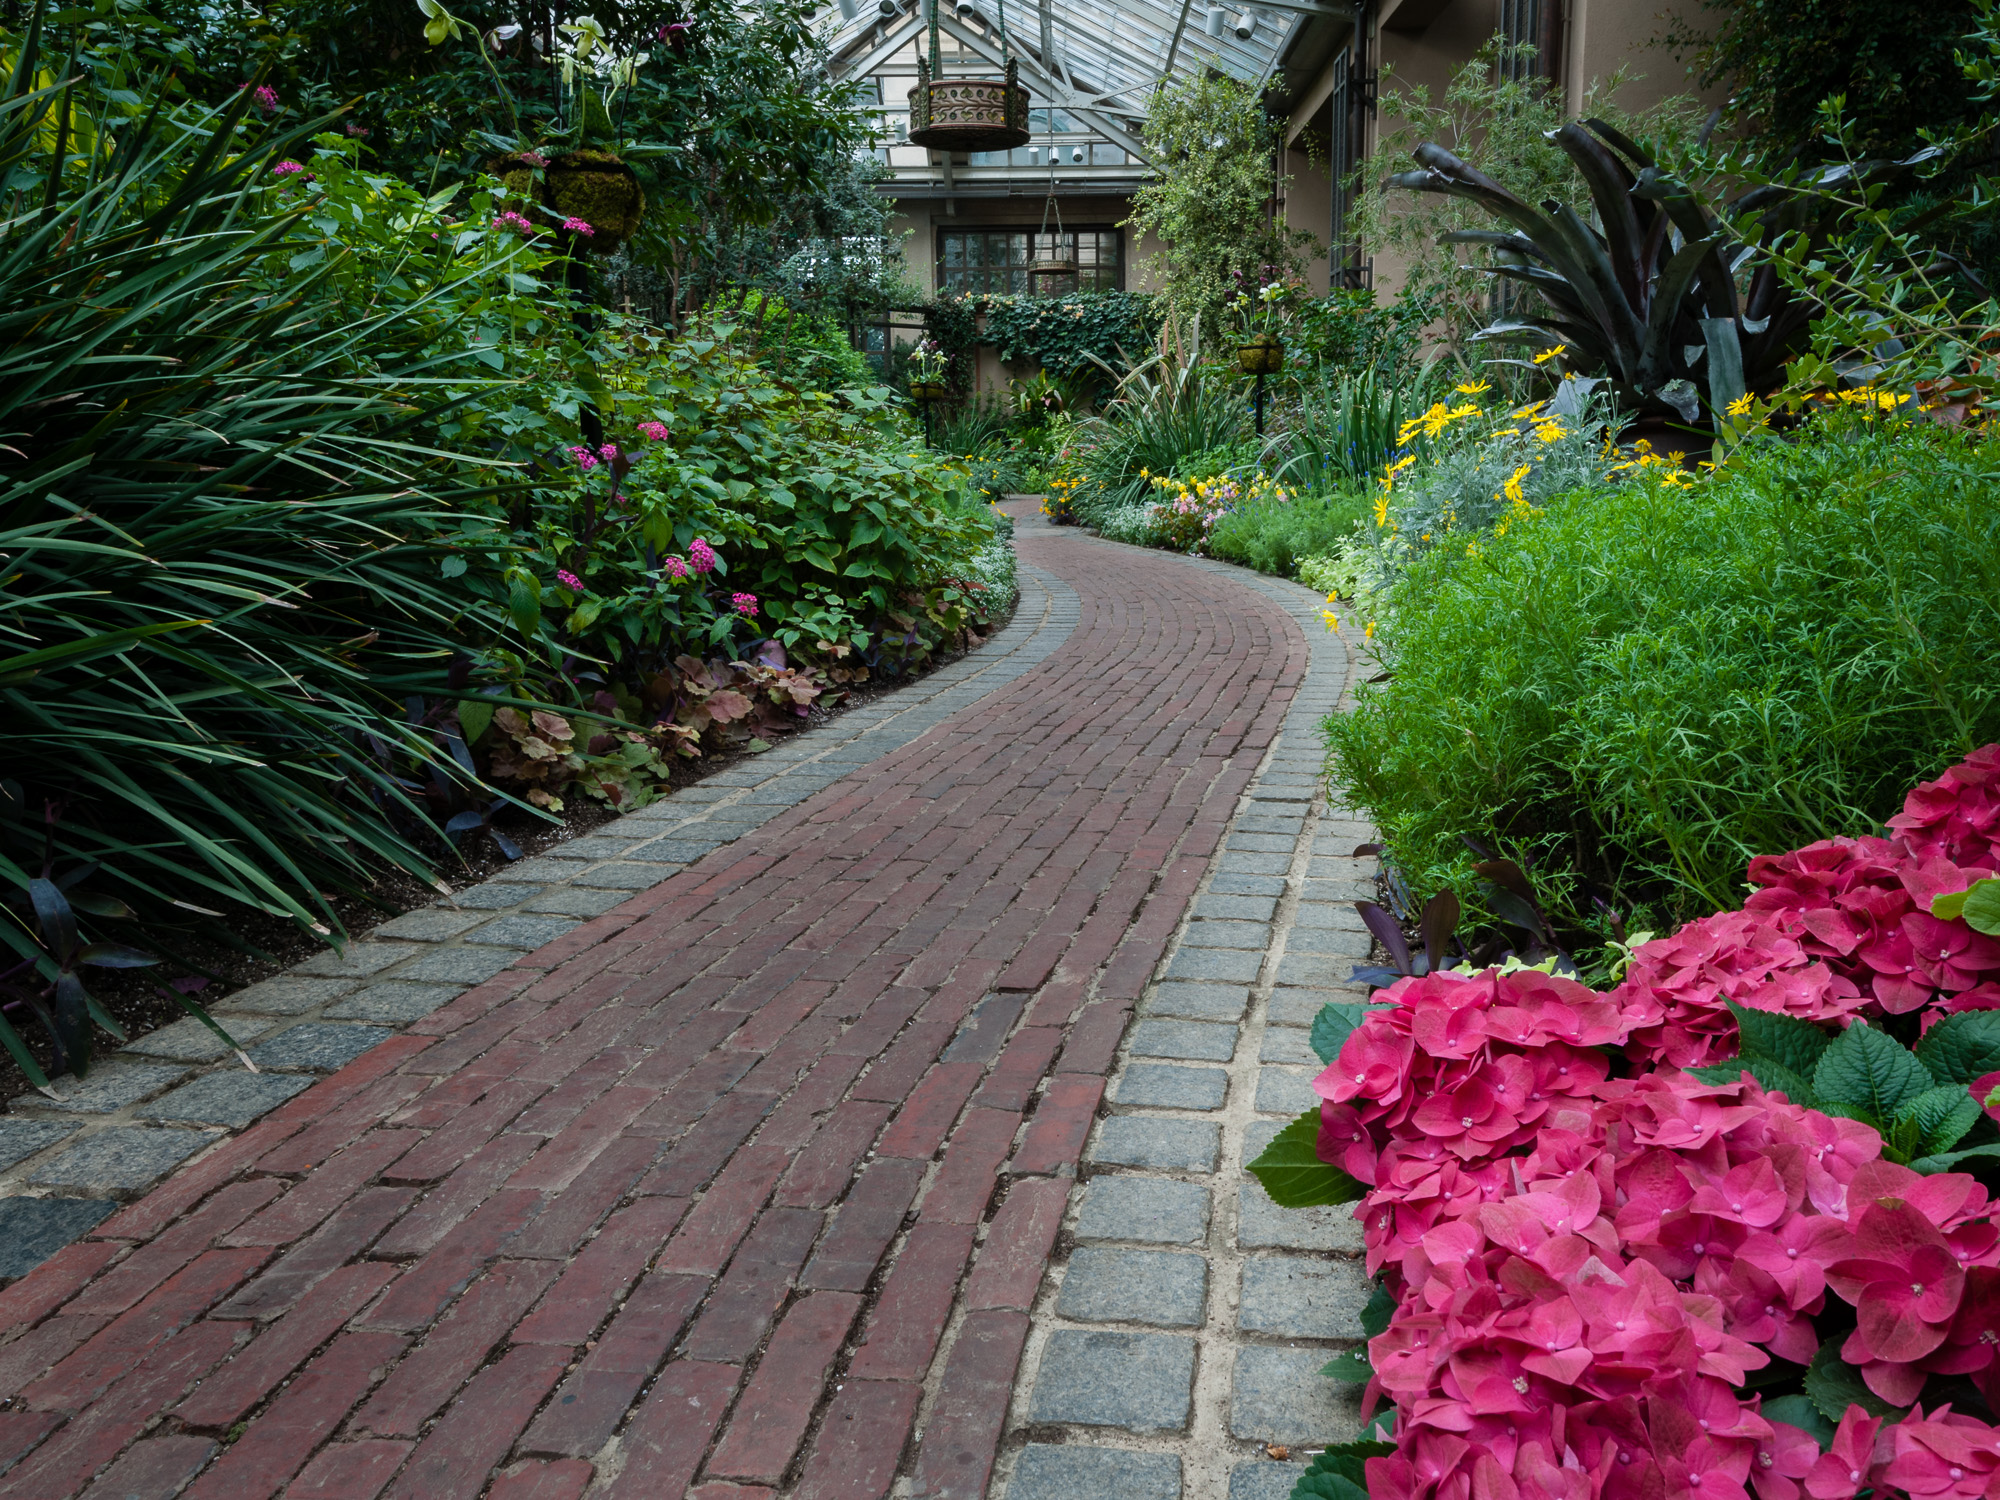 4: Brick path through Conservatory at Longwood Gardens